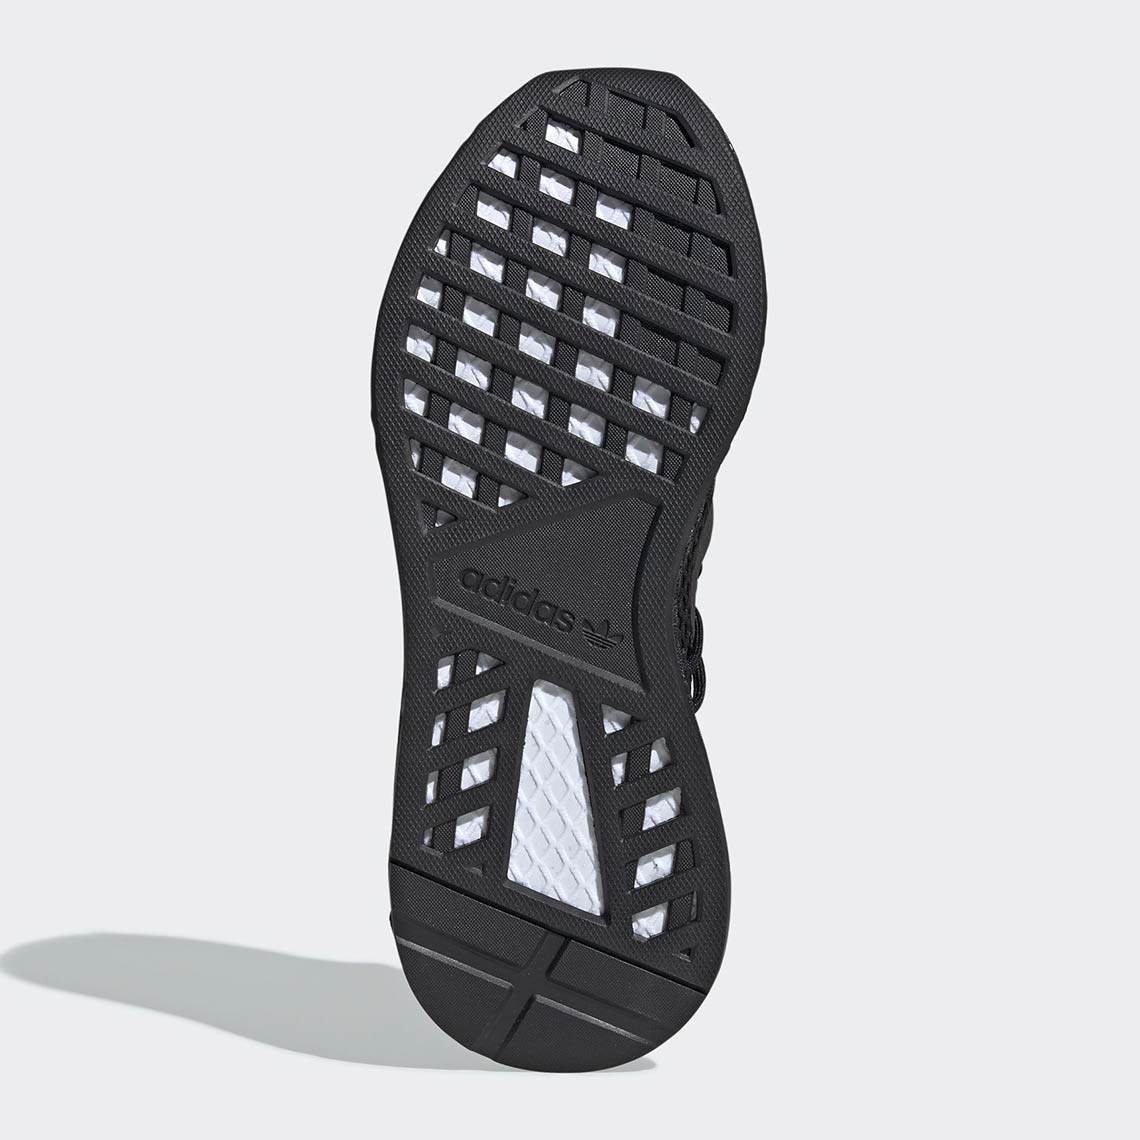 low priced 441be f29f4 adidas Deerupt S Black White BD7879 Release Date  SneakerNew